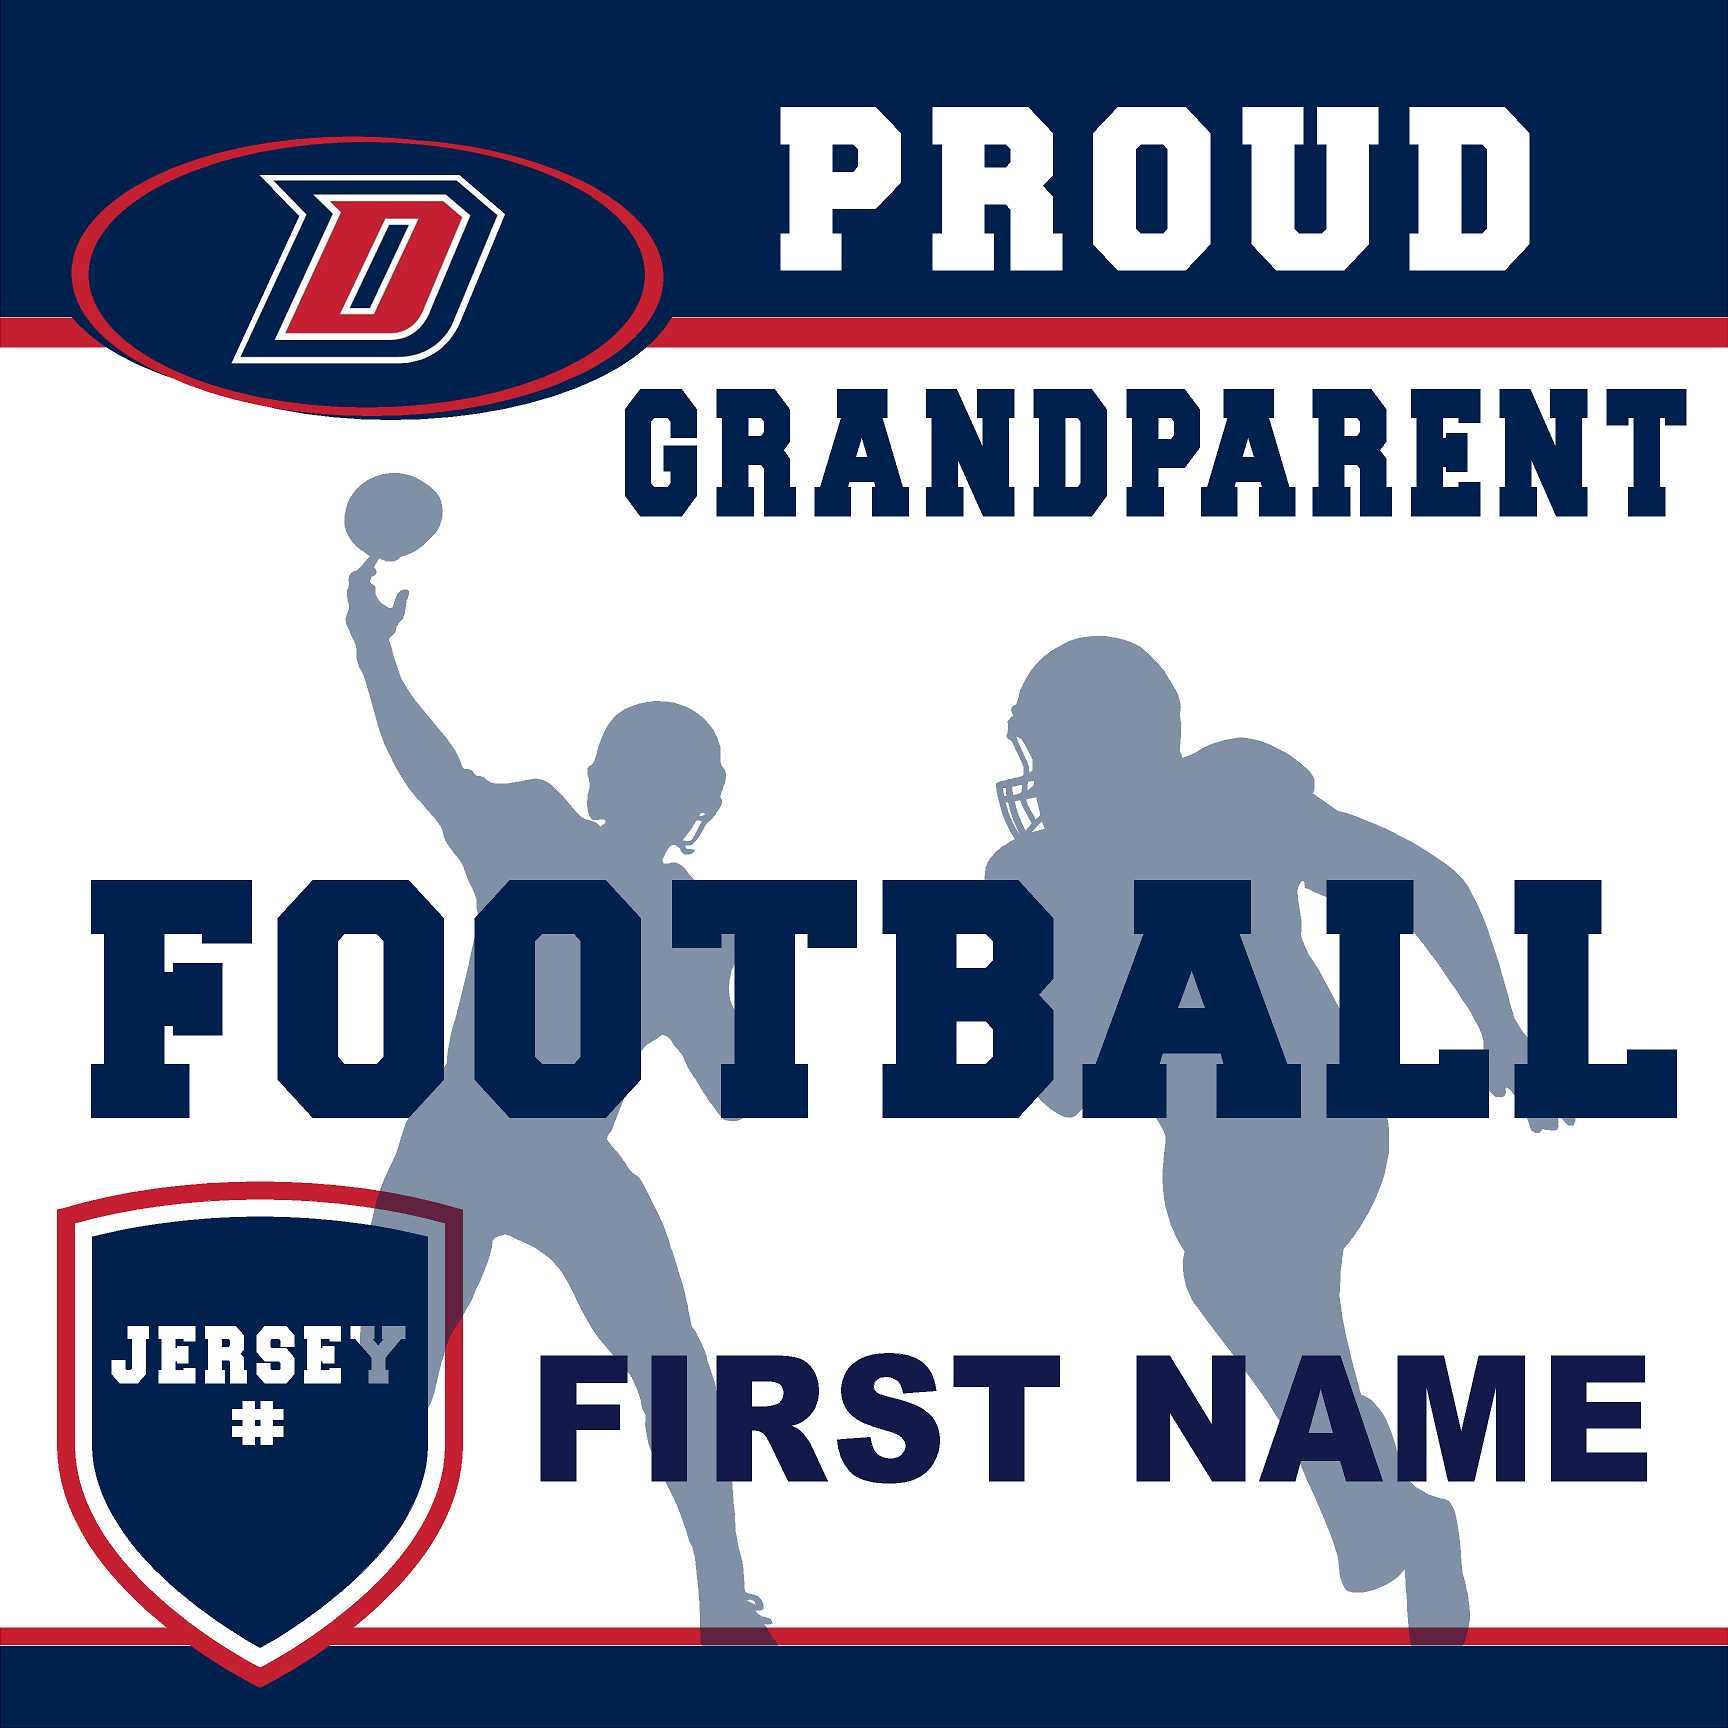 Dublin High School Football (Grandparent with Jersey #) 24x24 Yard Sign (includes installation in your yard)